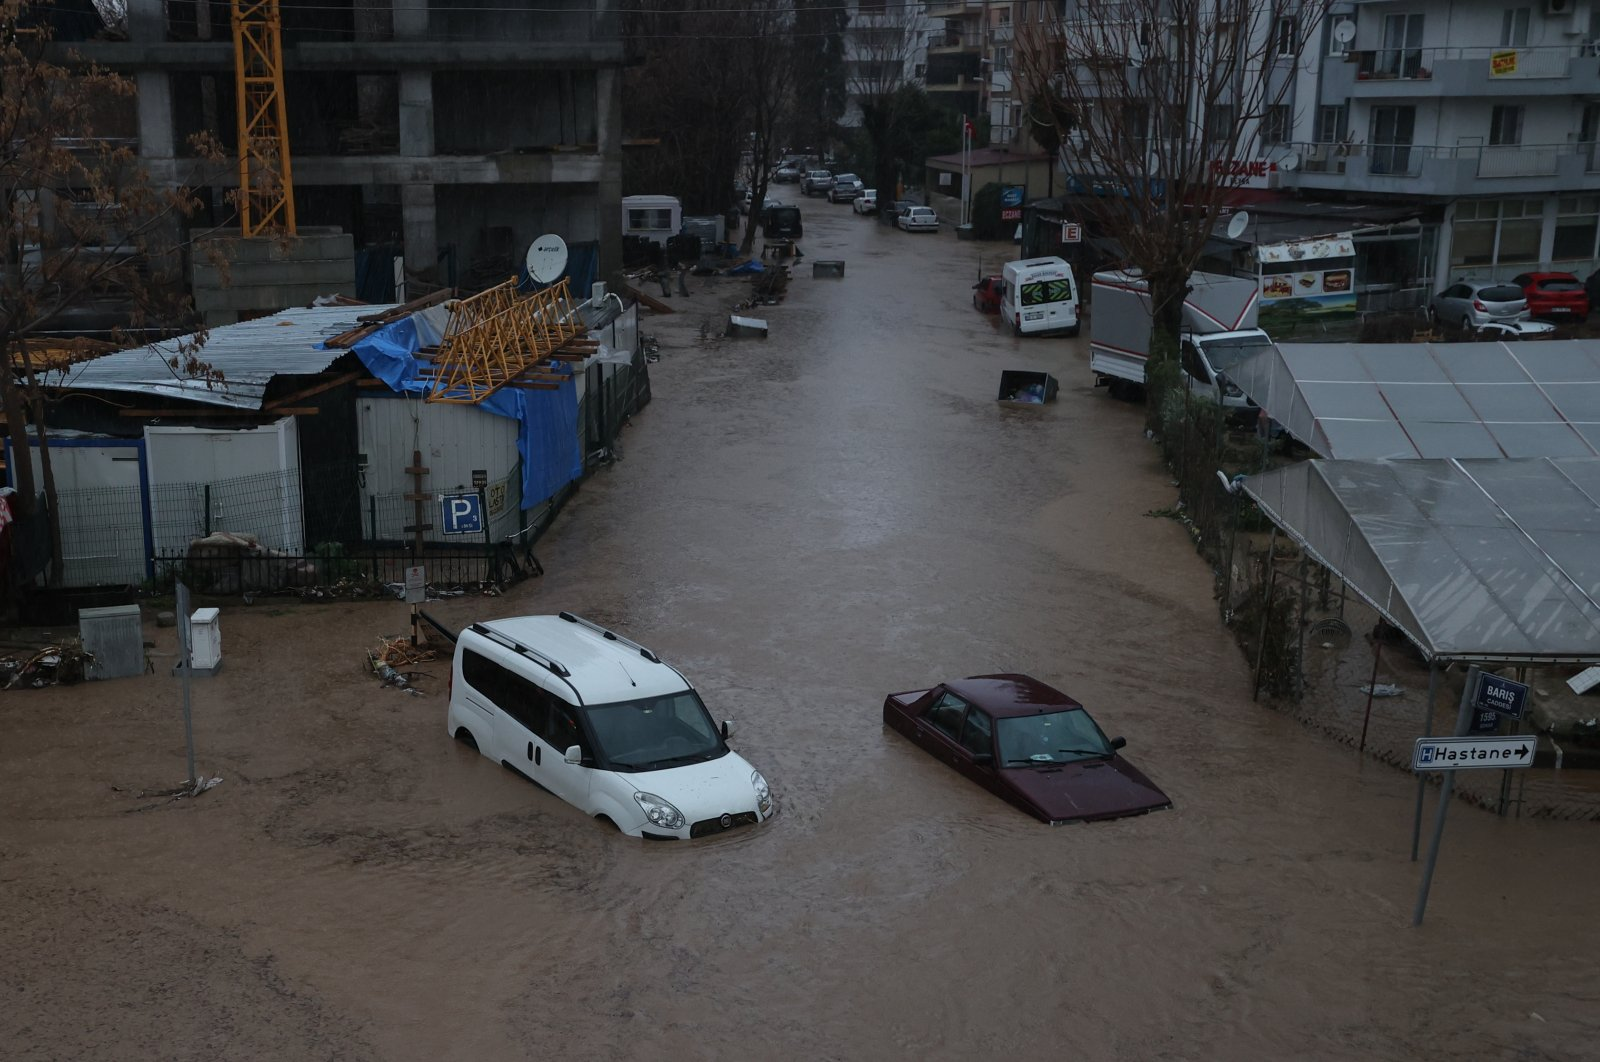 Vehicles submerged in floodwaters in the Karşıyaka district, in Izmir, western Turkey, Feb. 2, 2021. (AA PHOTO)